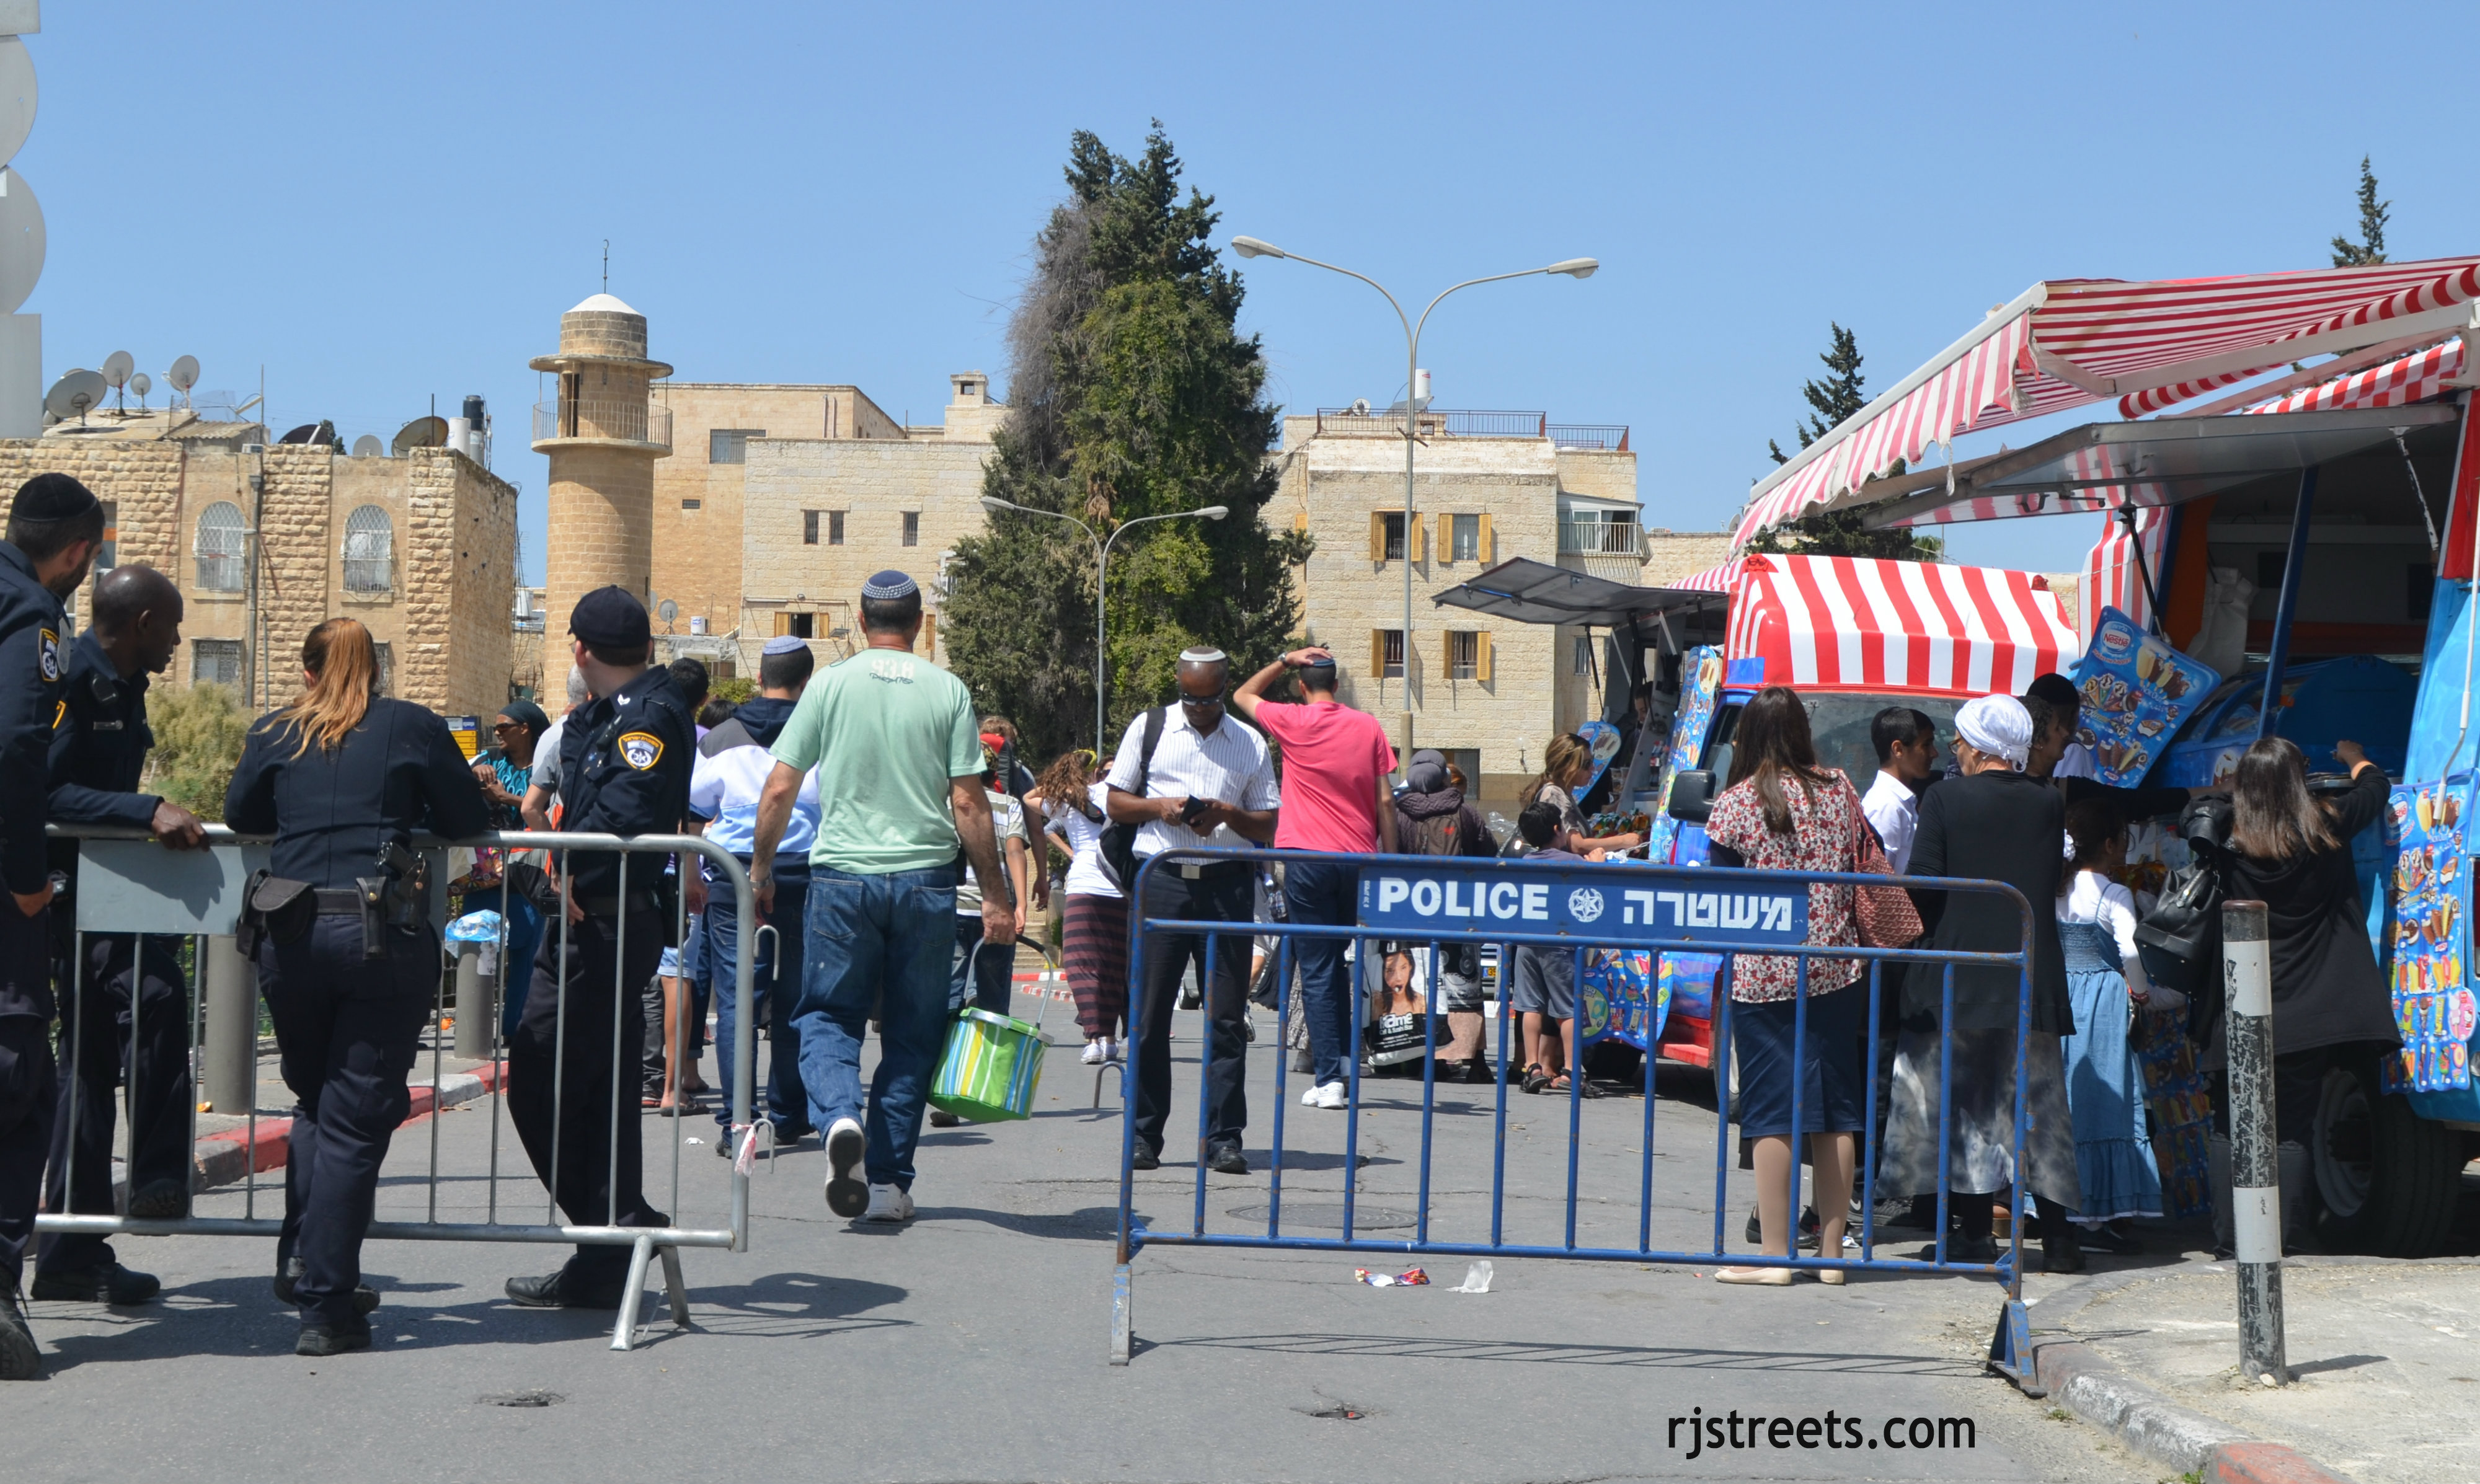 image exit Old City, photo Israel street blocked, picture barrier Jerusalem